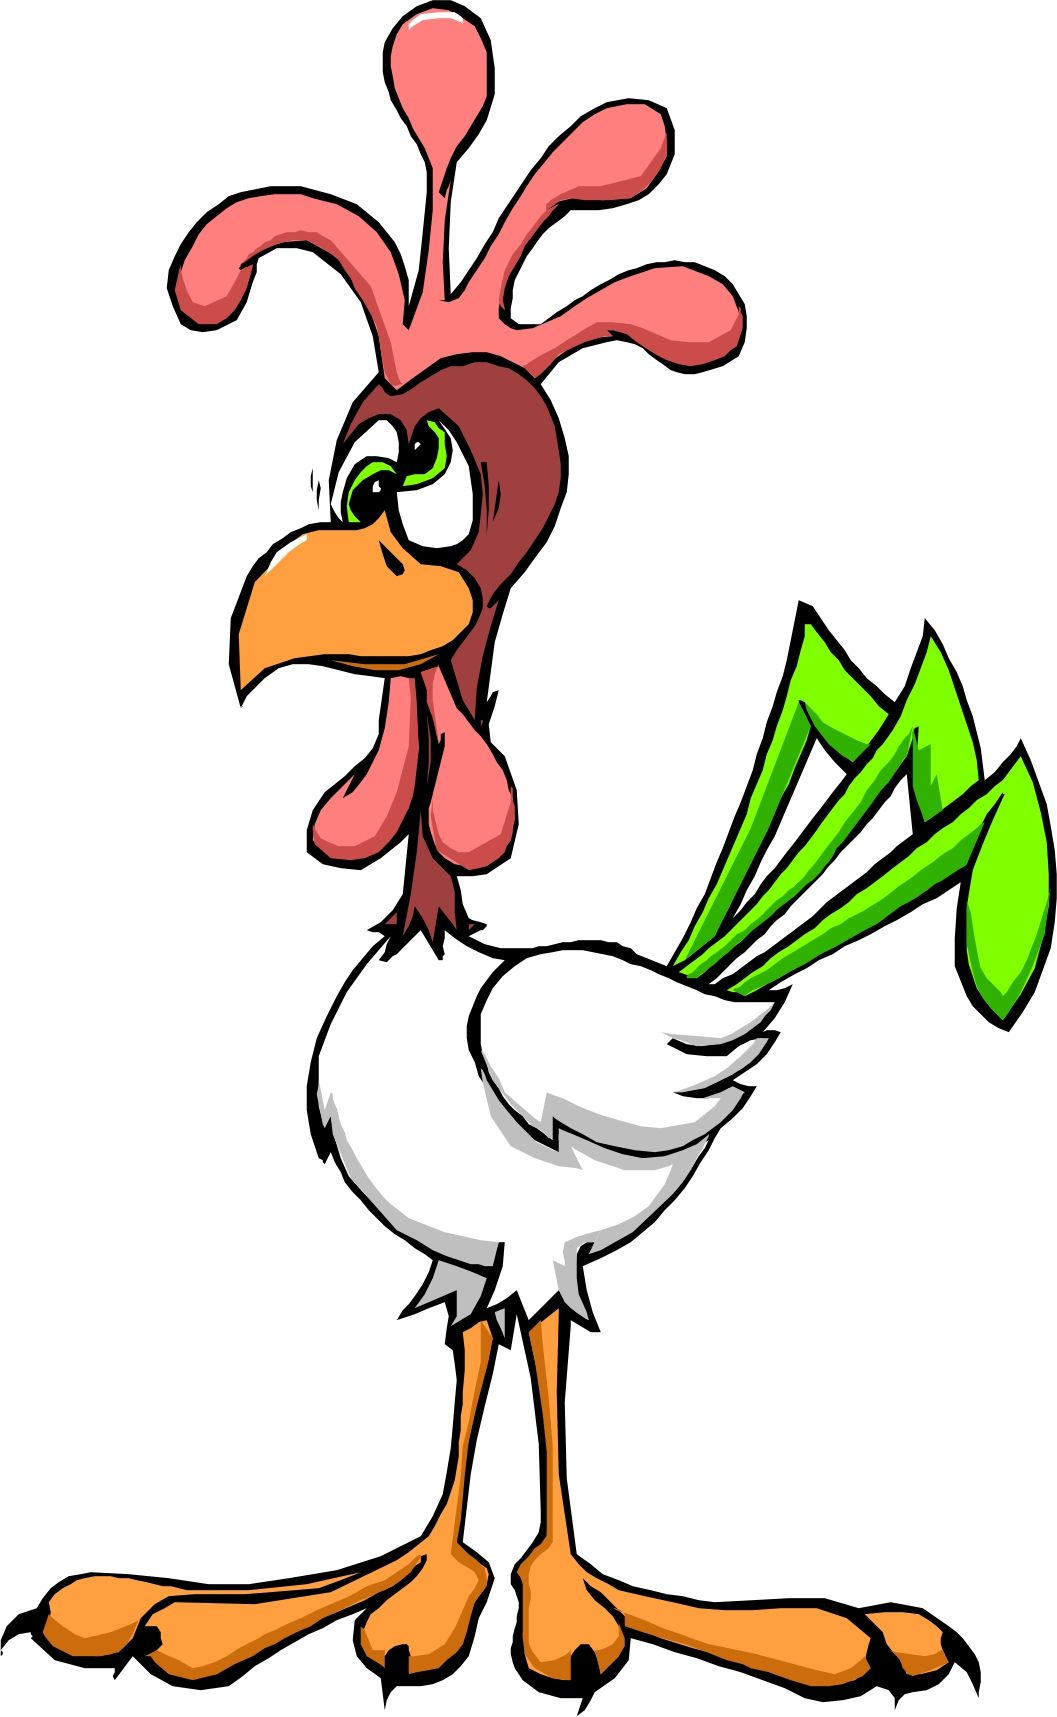 Animals clipart chicken. Cartoon chickens best backgrounds